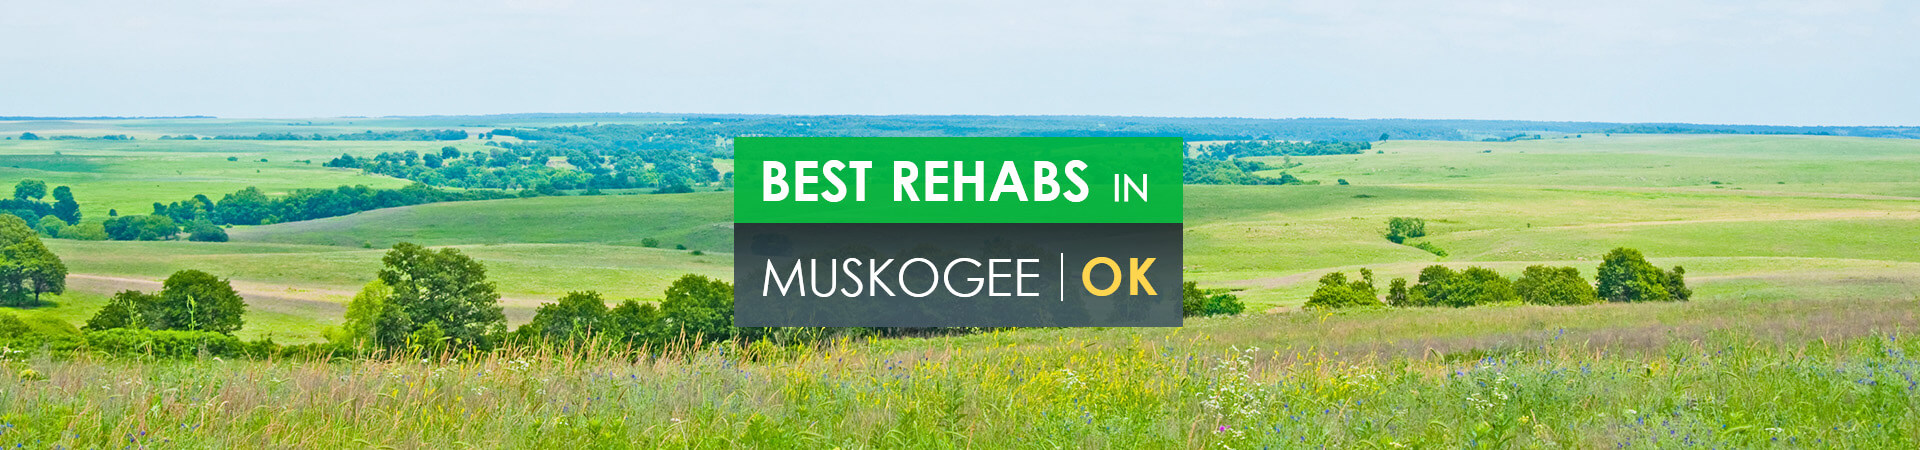 Best rehabs in Muskogee, OK